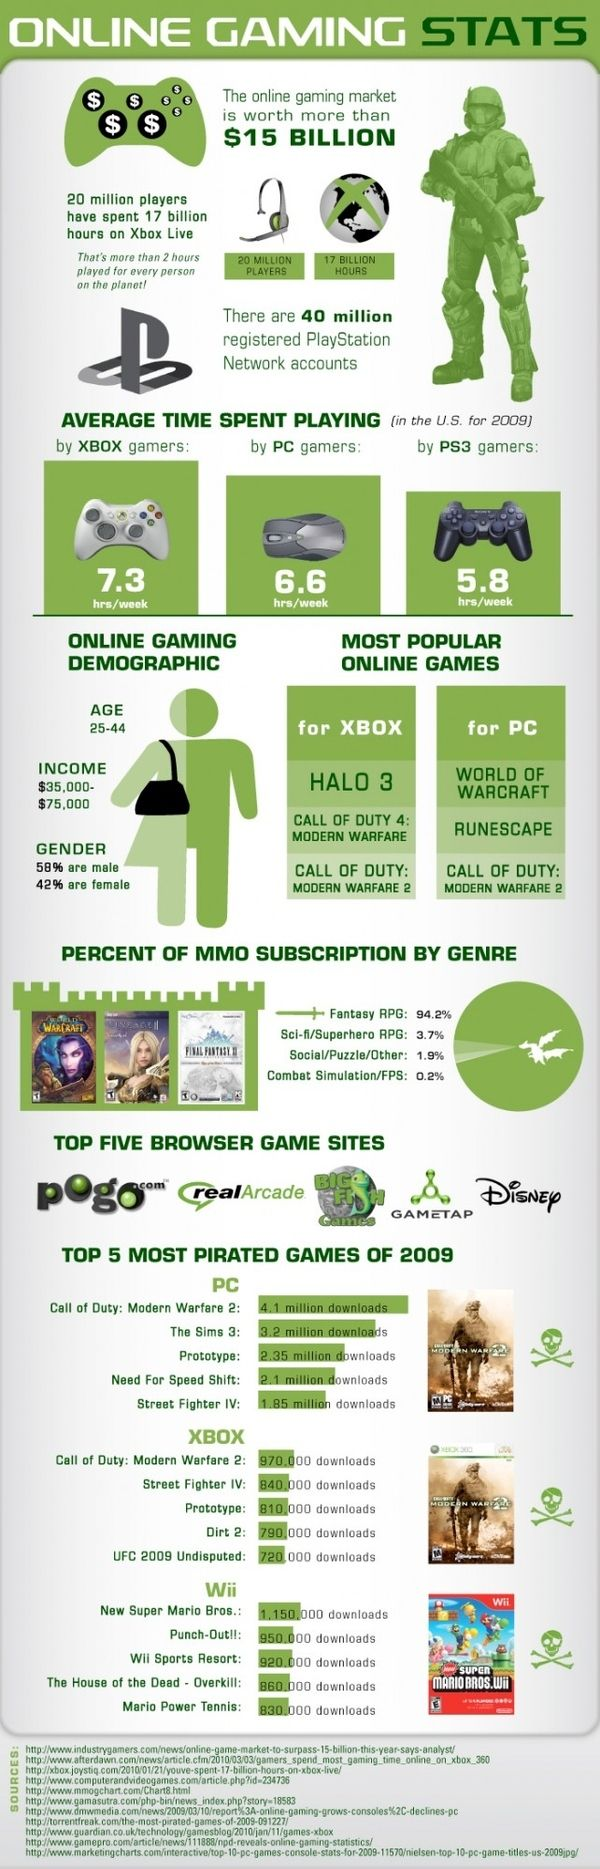 Online gaming stats